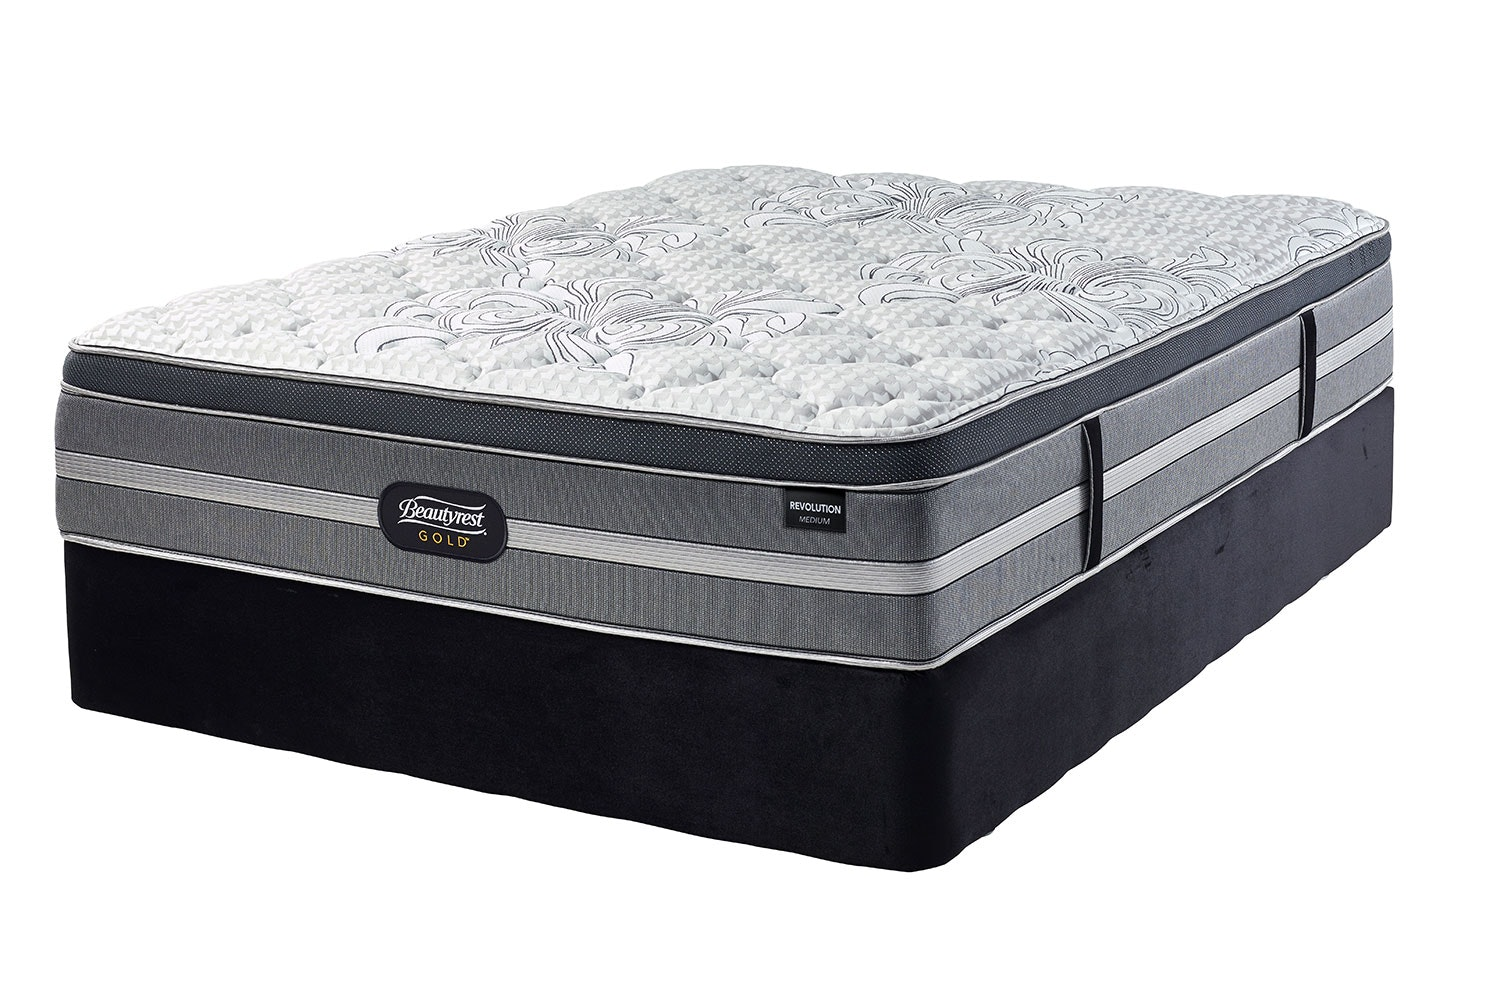 Revolution Medium Double Bed by Beautyrest